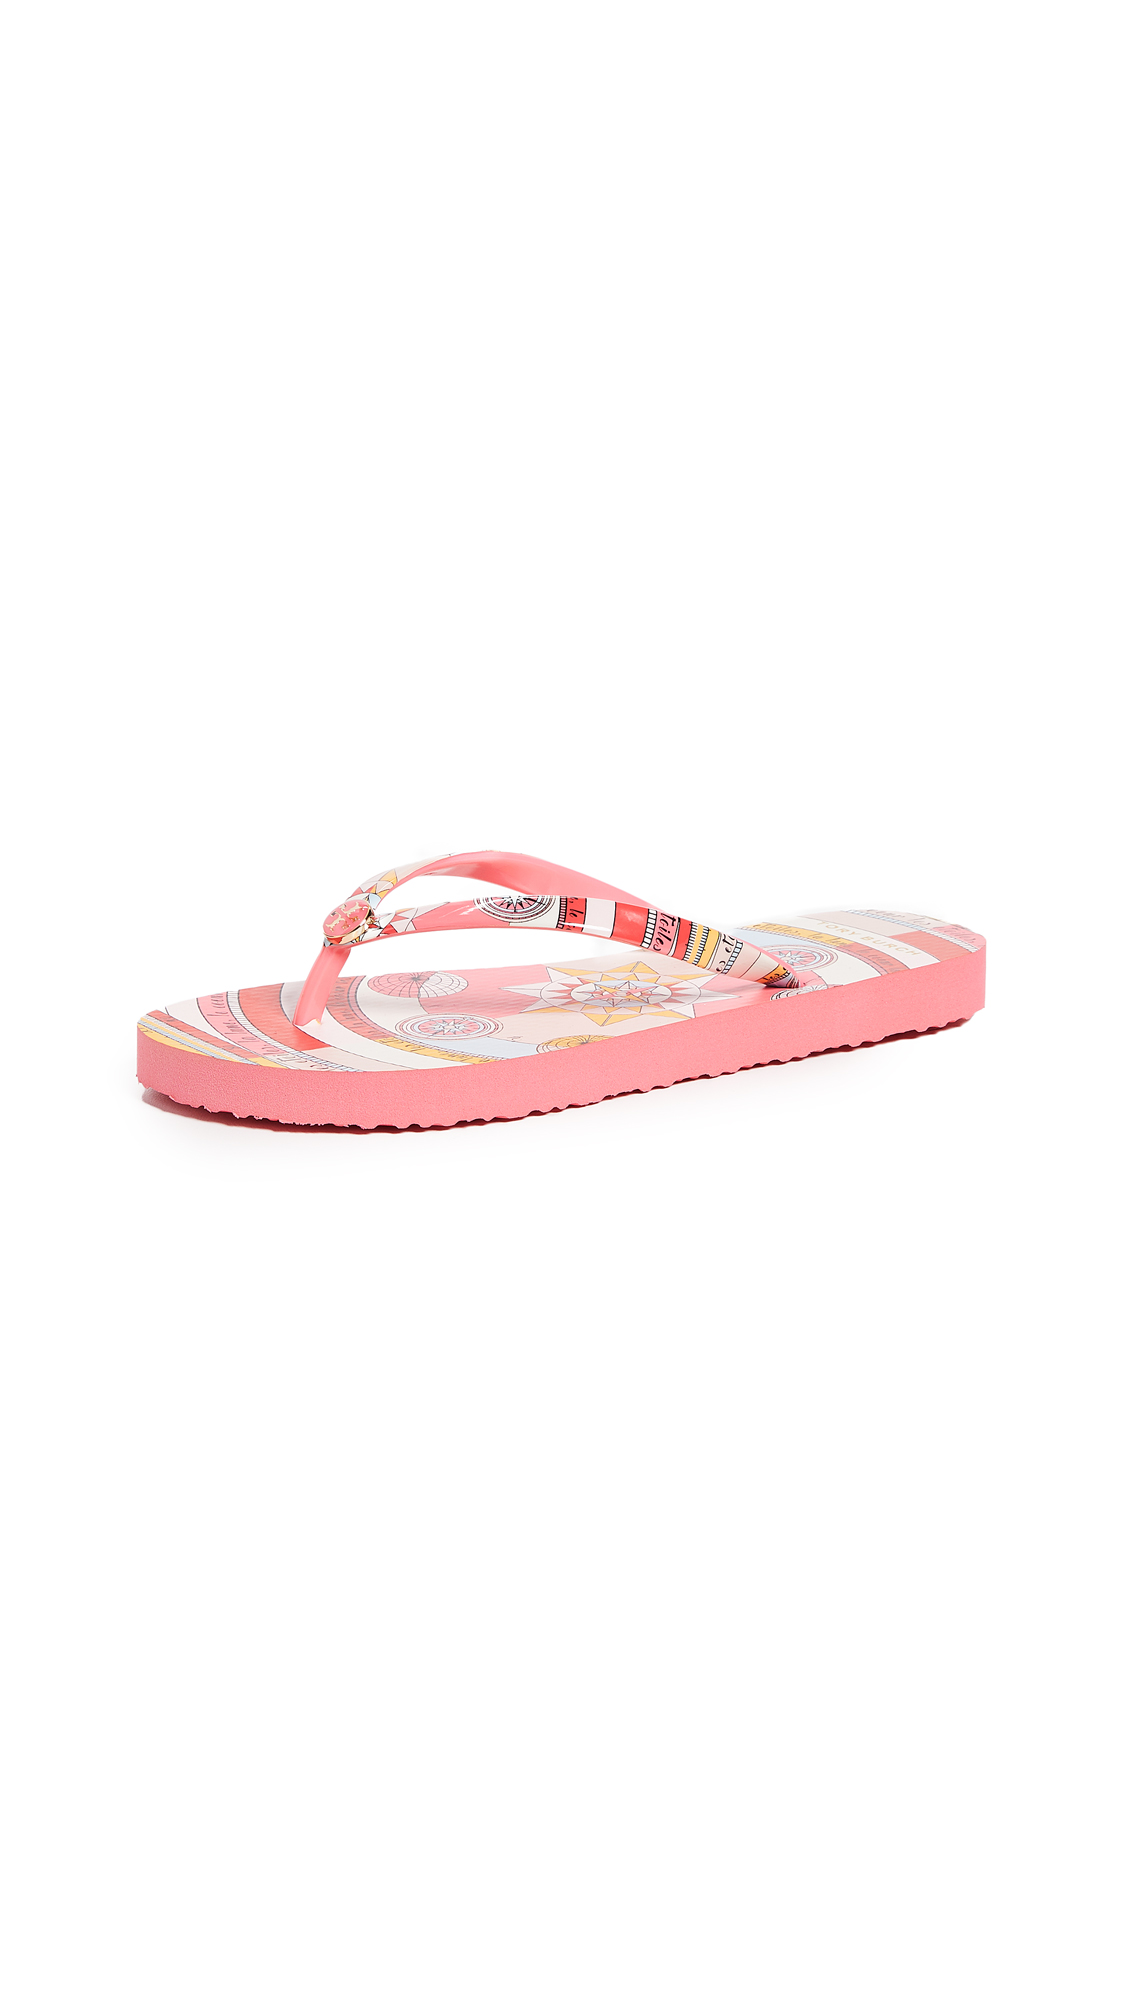 cda1f2475064 Tory Burch Printed Thin Flip Flops In Pink Constellation